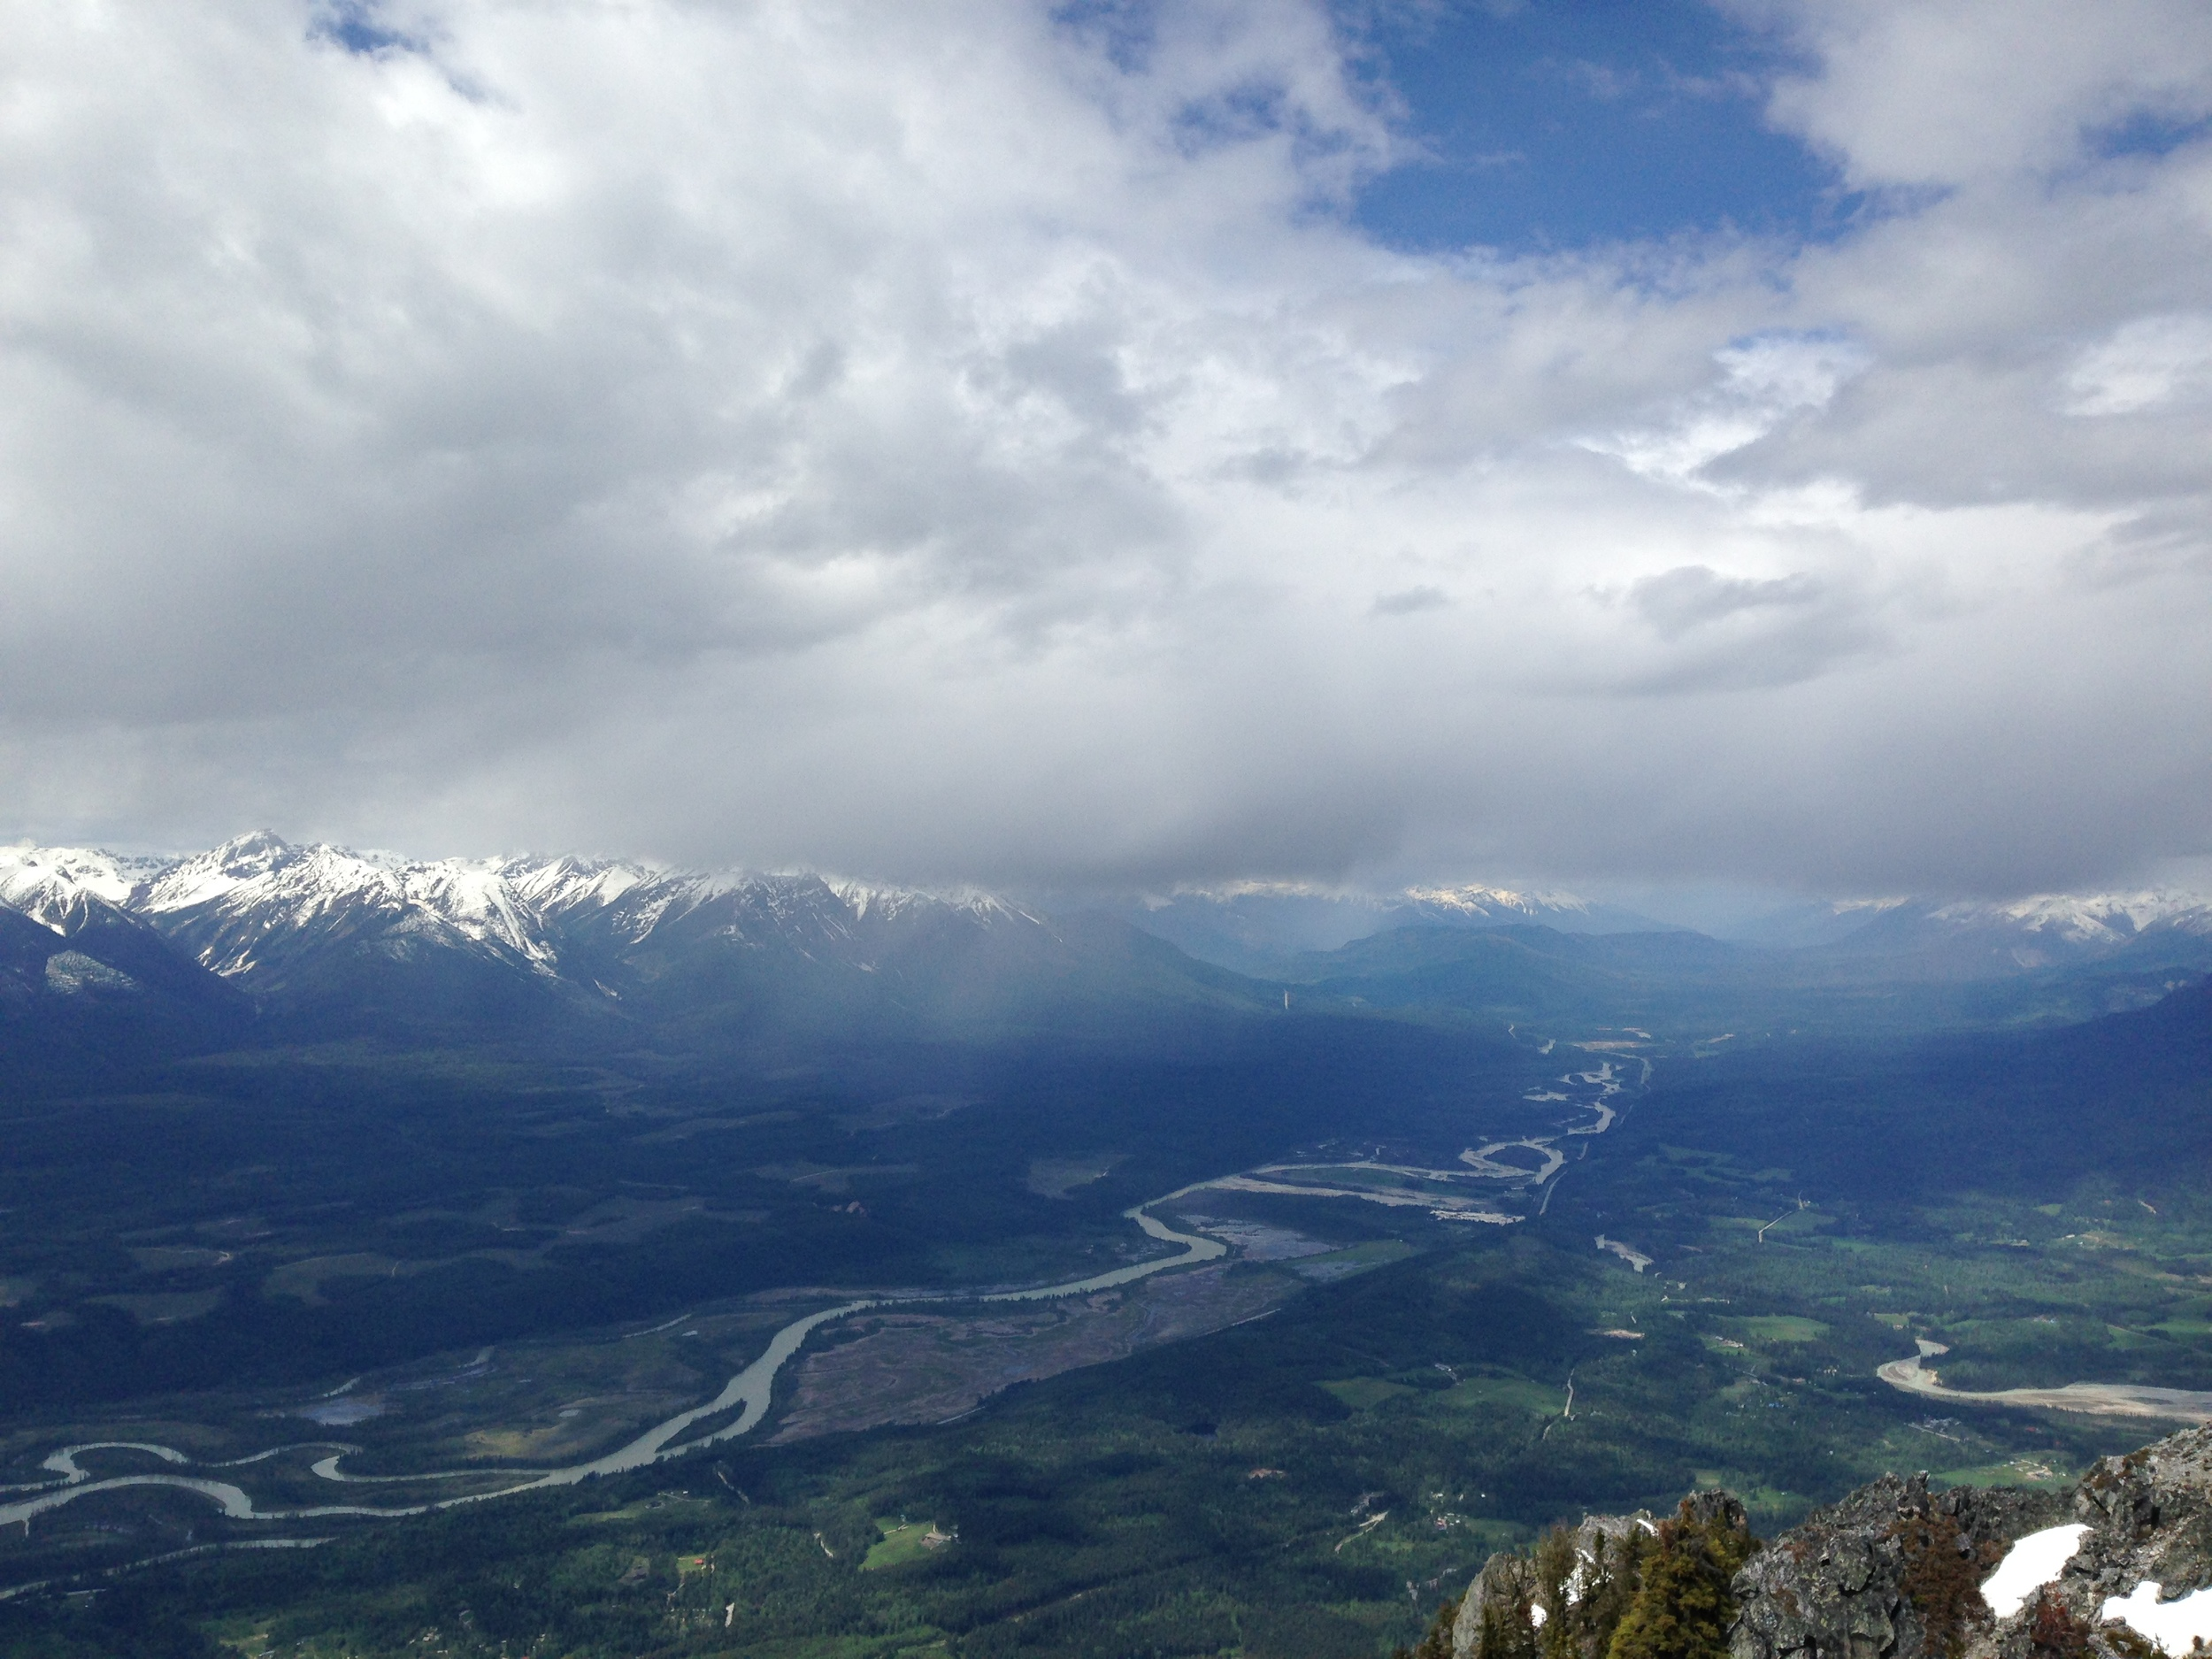 Golden and the Northern Columbia River Valley as seen from high a top Mt. Moberley.